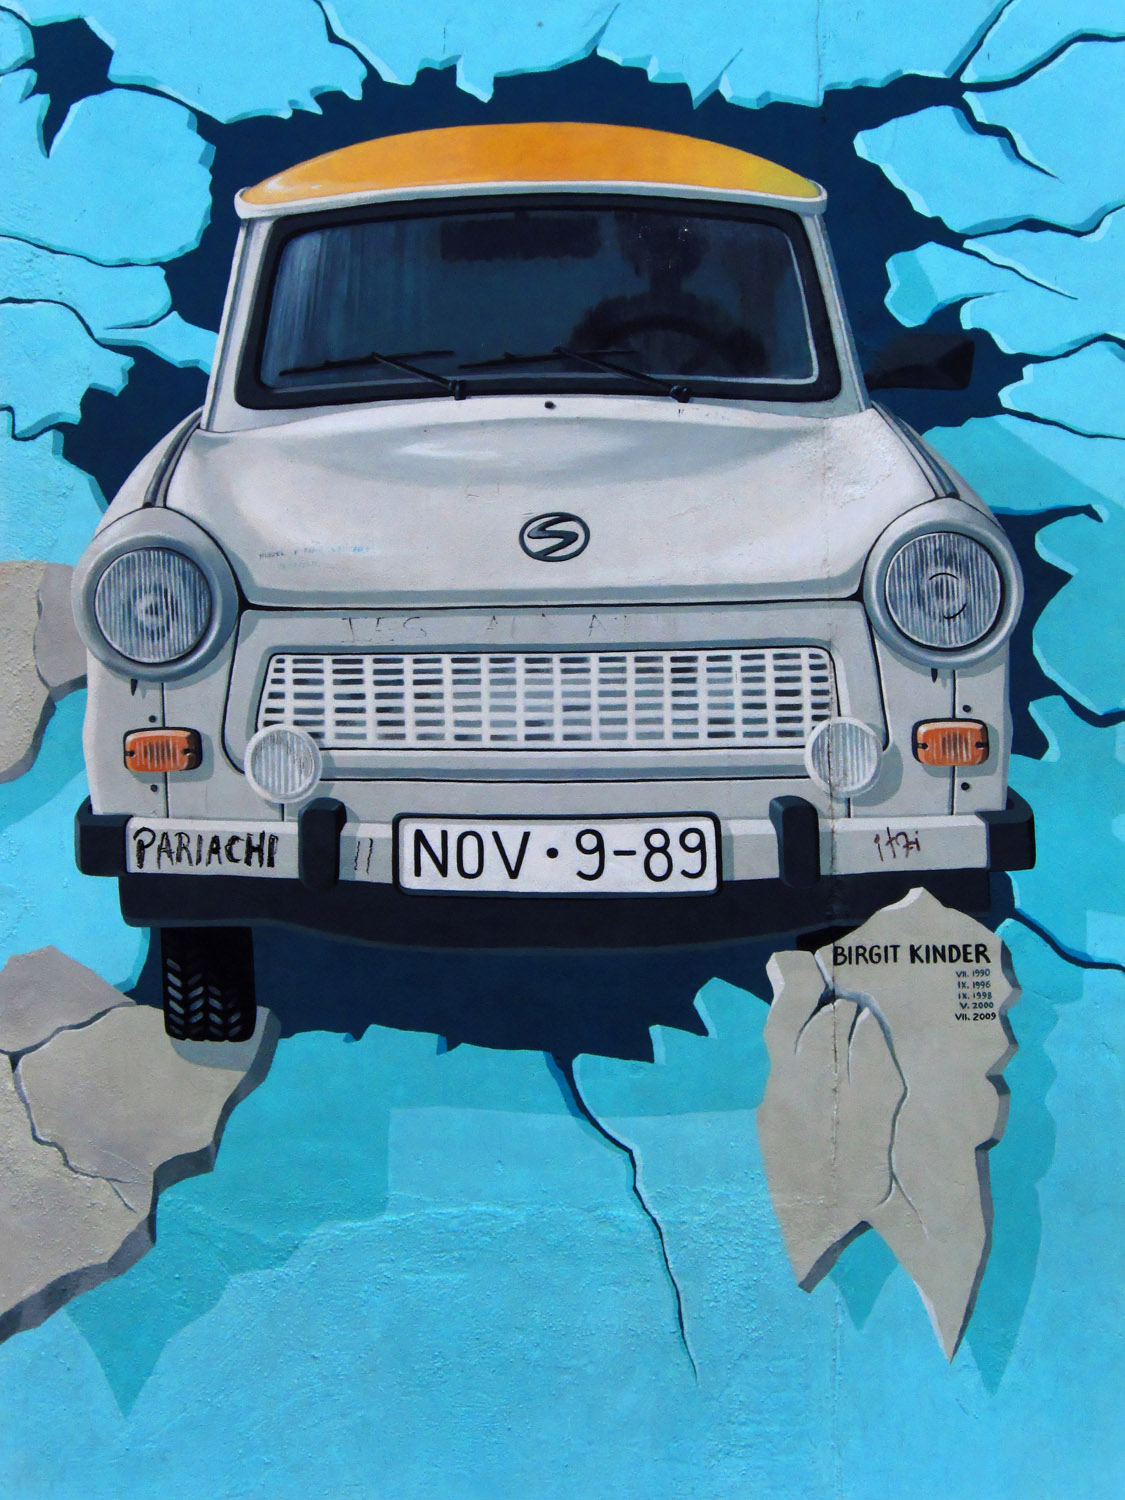 part of the berlin wall  street art with an old trabant german car drawned by birgit kinder